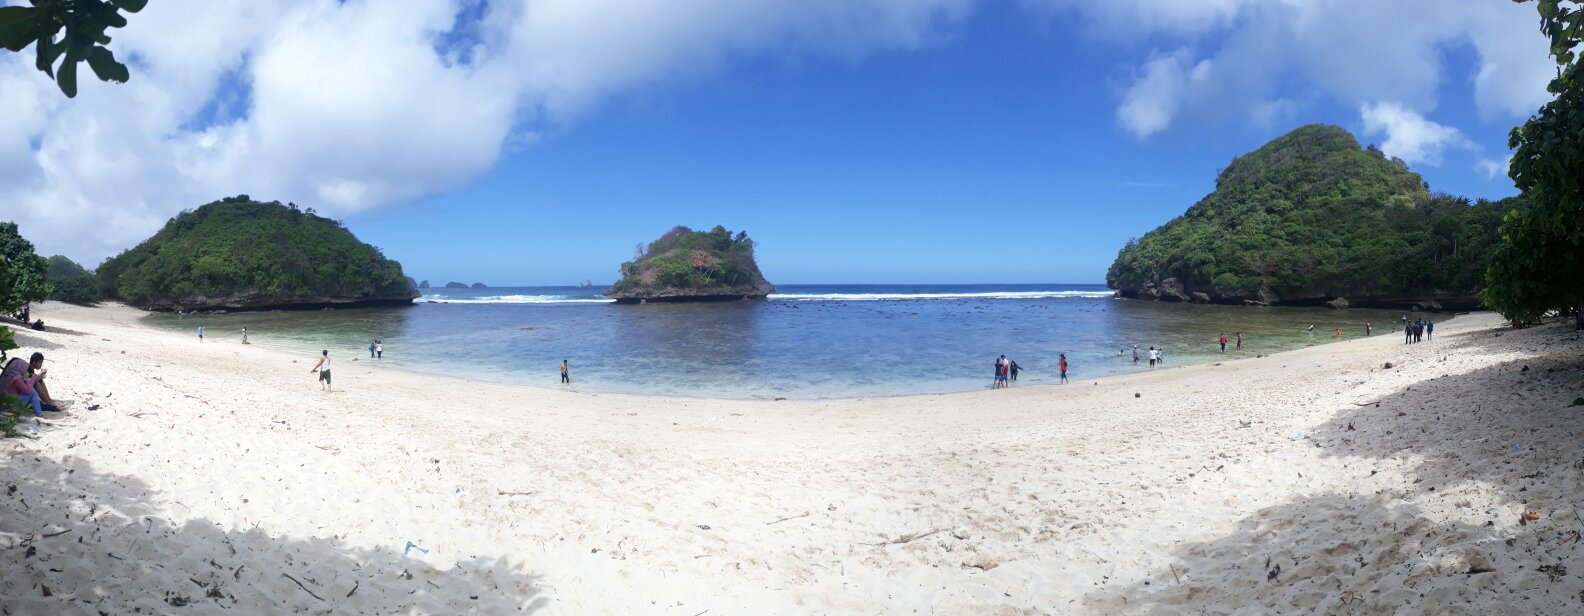 Path Photo Batu Pantai Malang Raya Paket Sehari Start Point